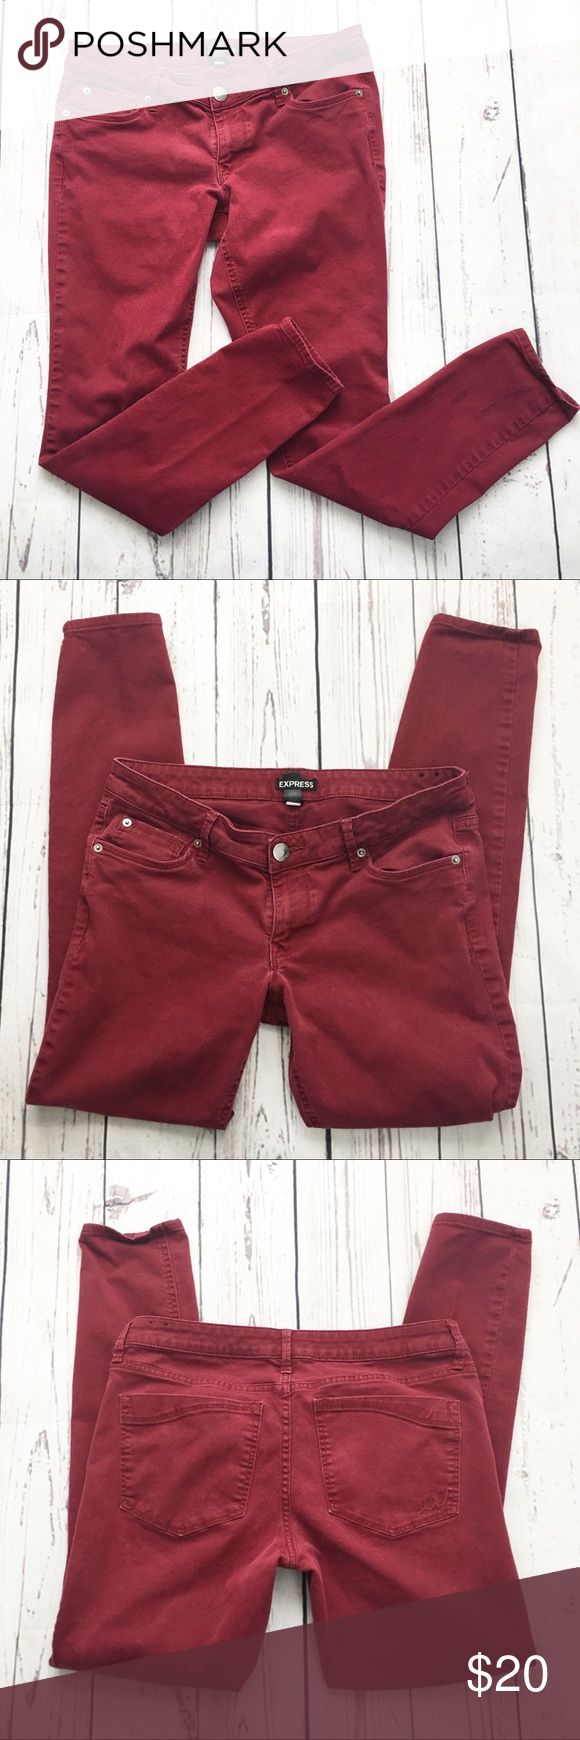 Express Maroon Skinny Jeans size 10 Dark red maroon express skinny jeans. Women's size 10. Stretchy Express Jeans Skinny